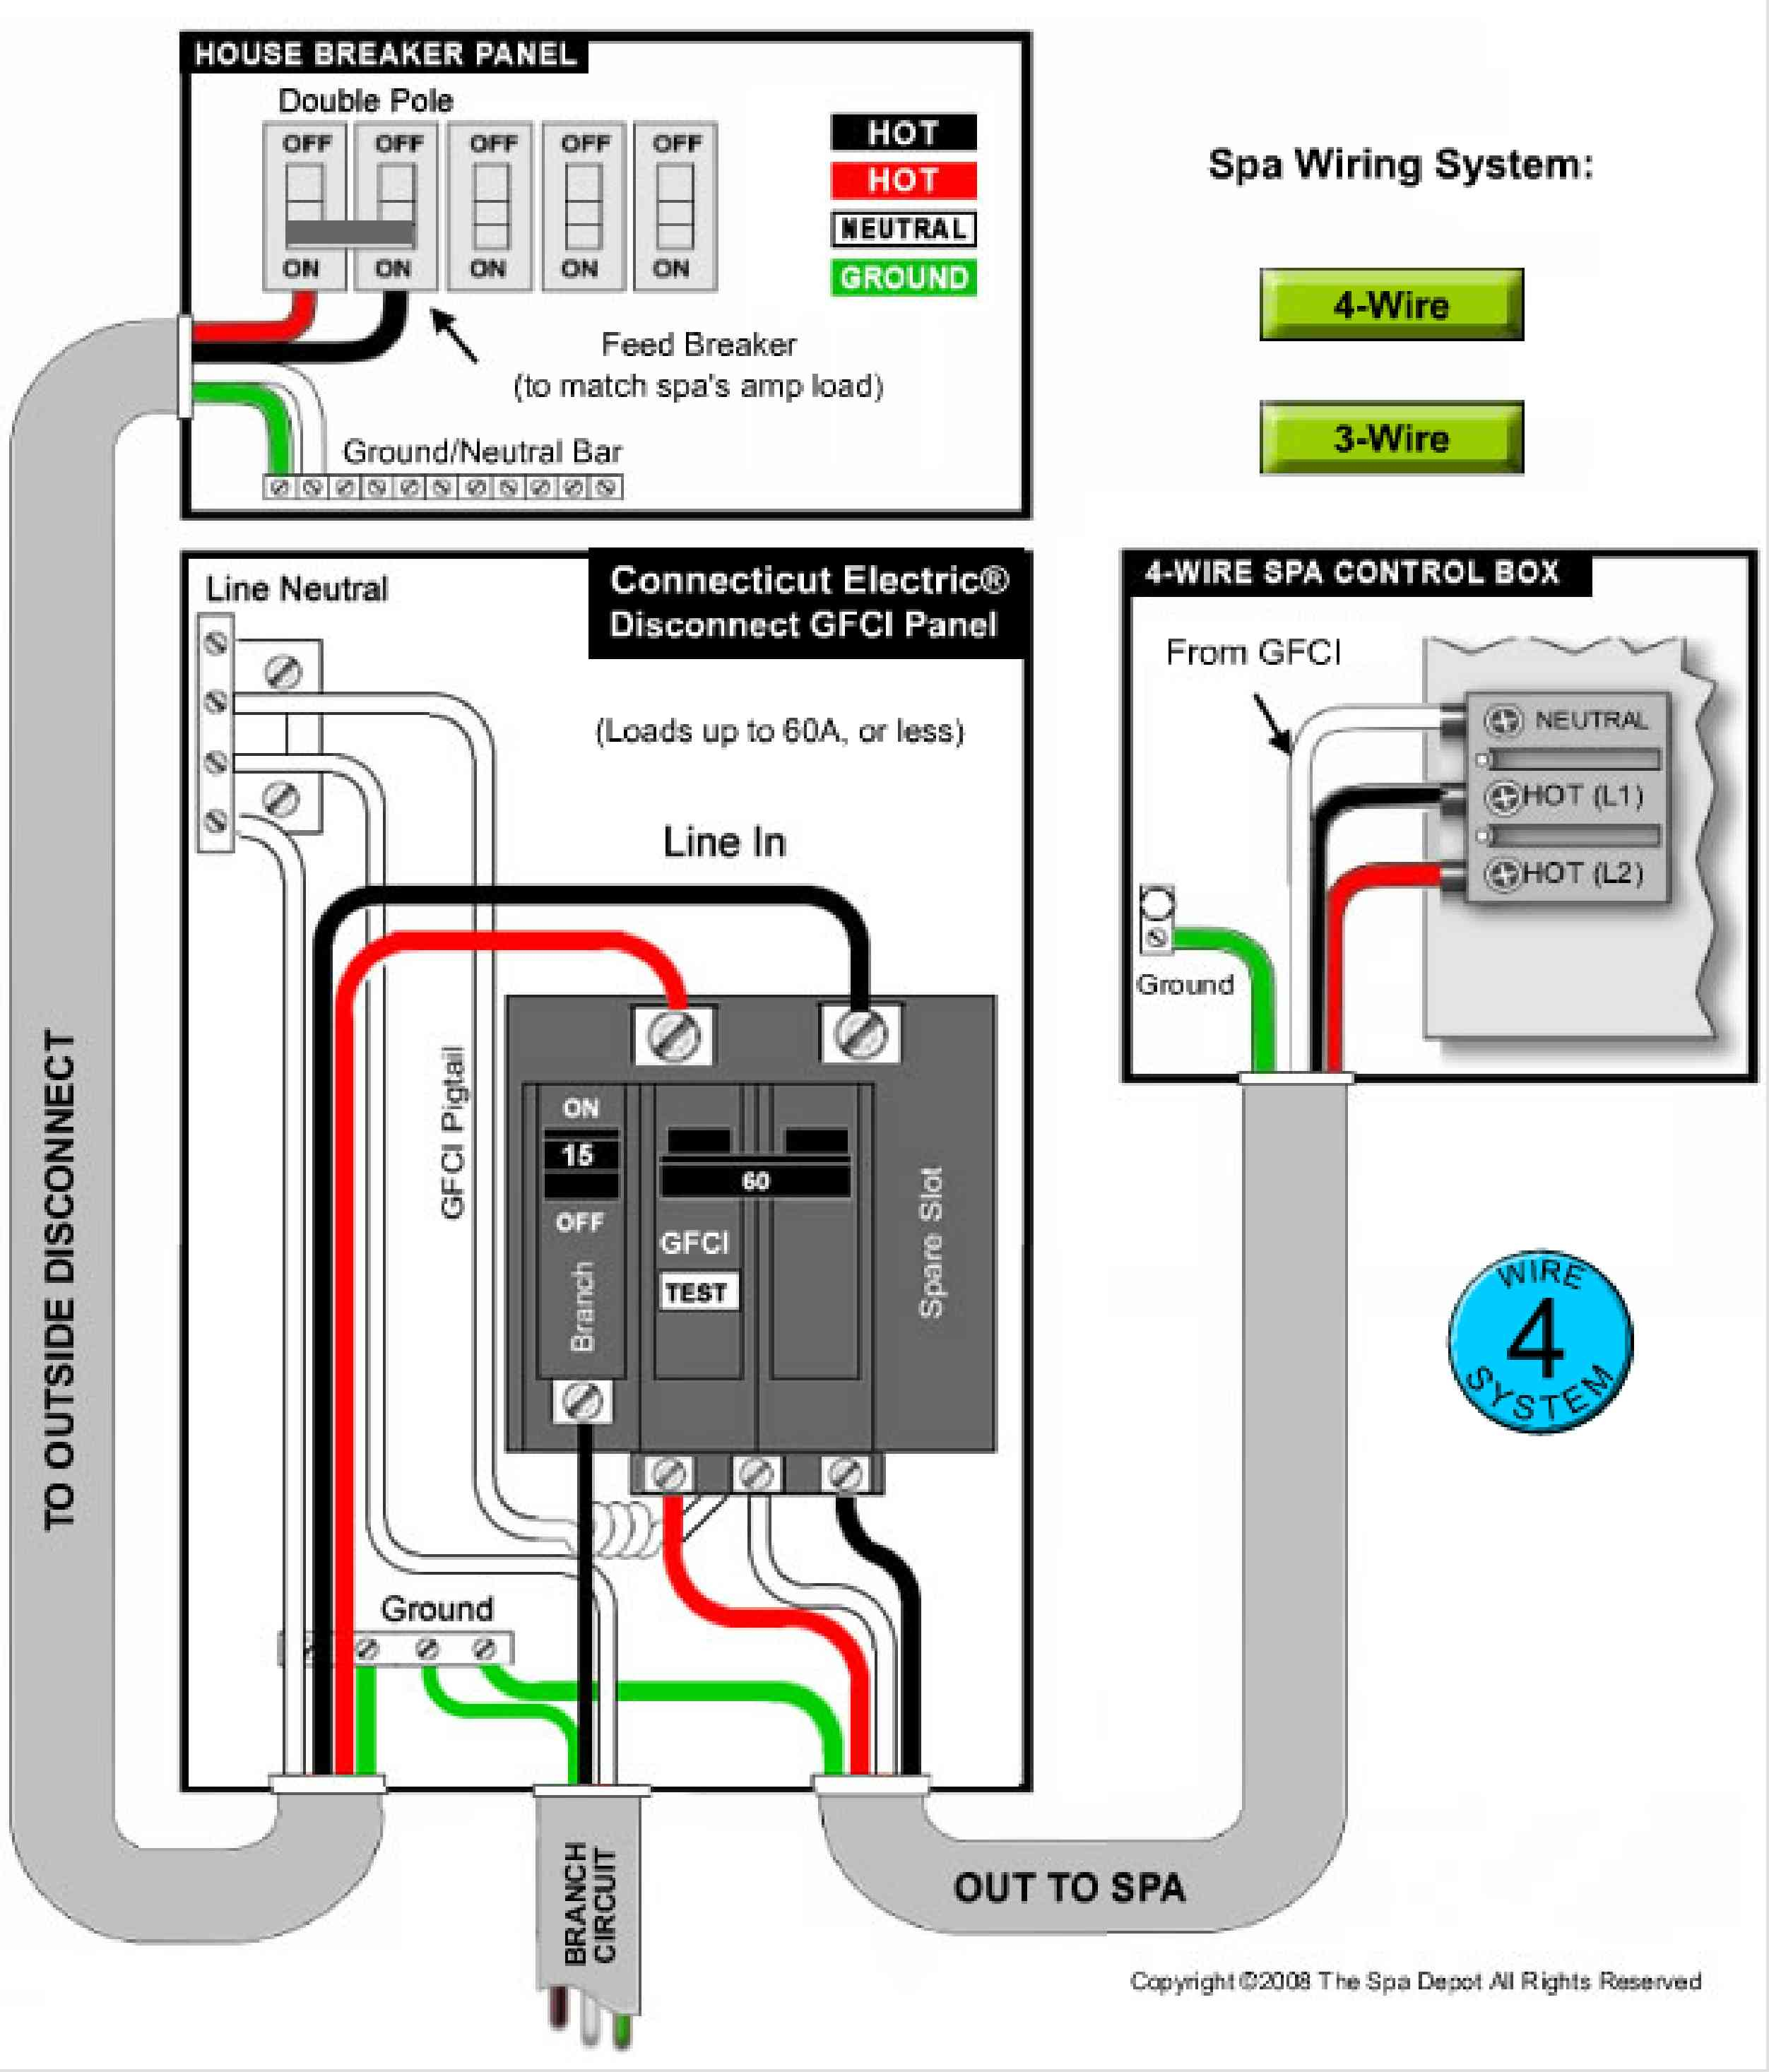 220v hot tub wiring diagram Download-4 Wire Hot Tub Wiring Diagram Gooddy Org Throughout 20-j